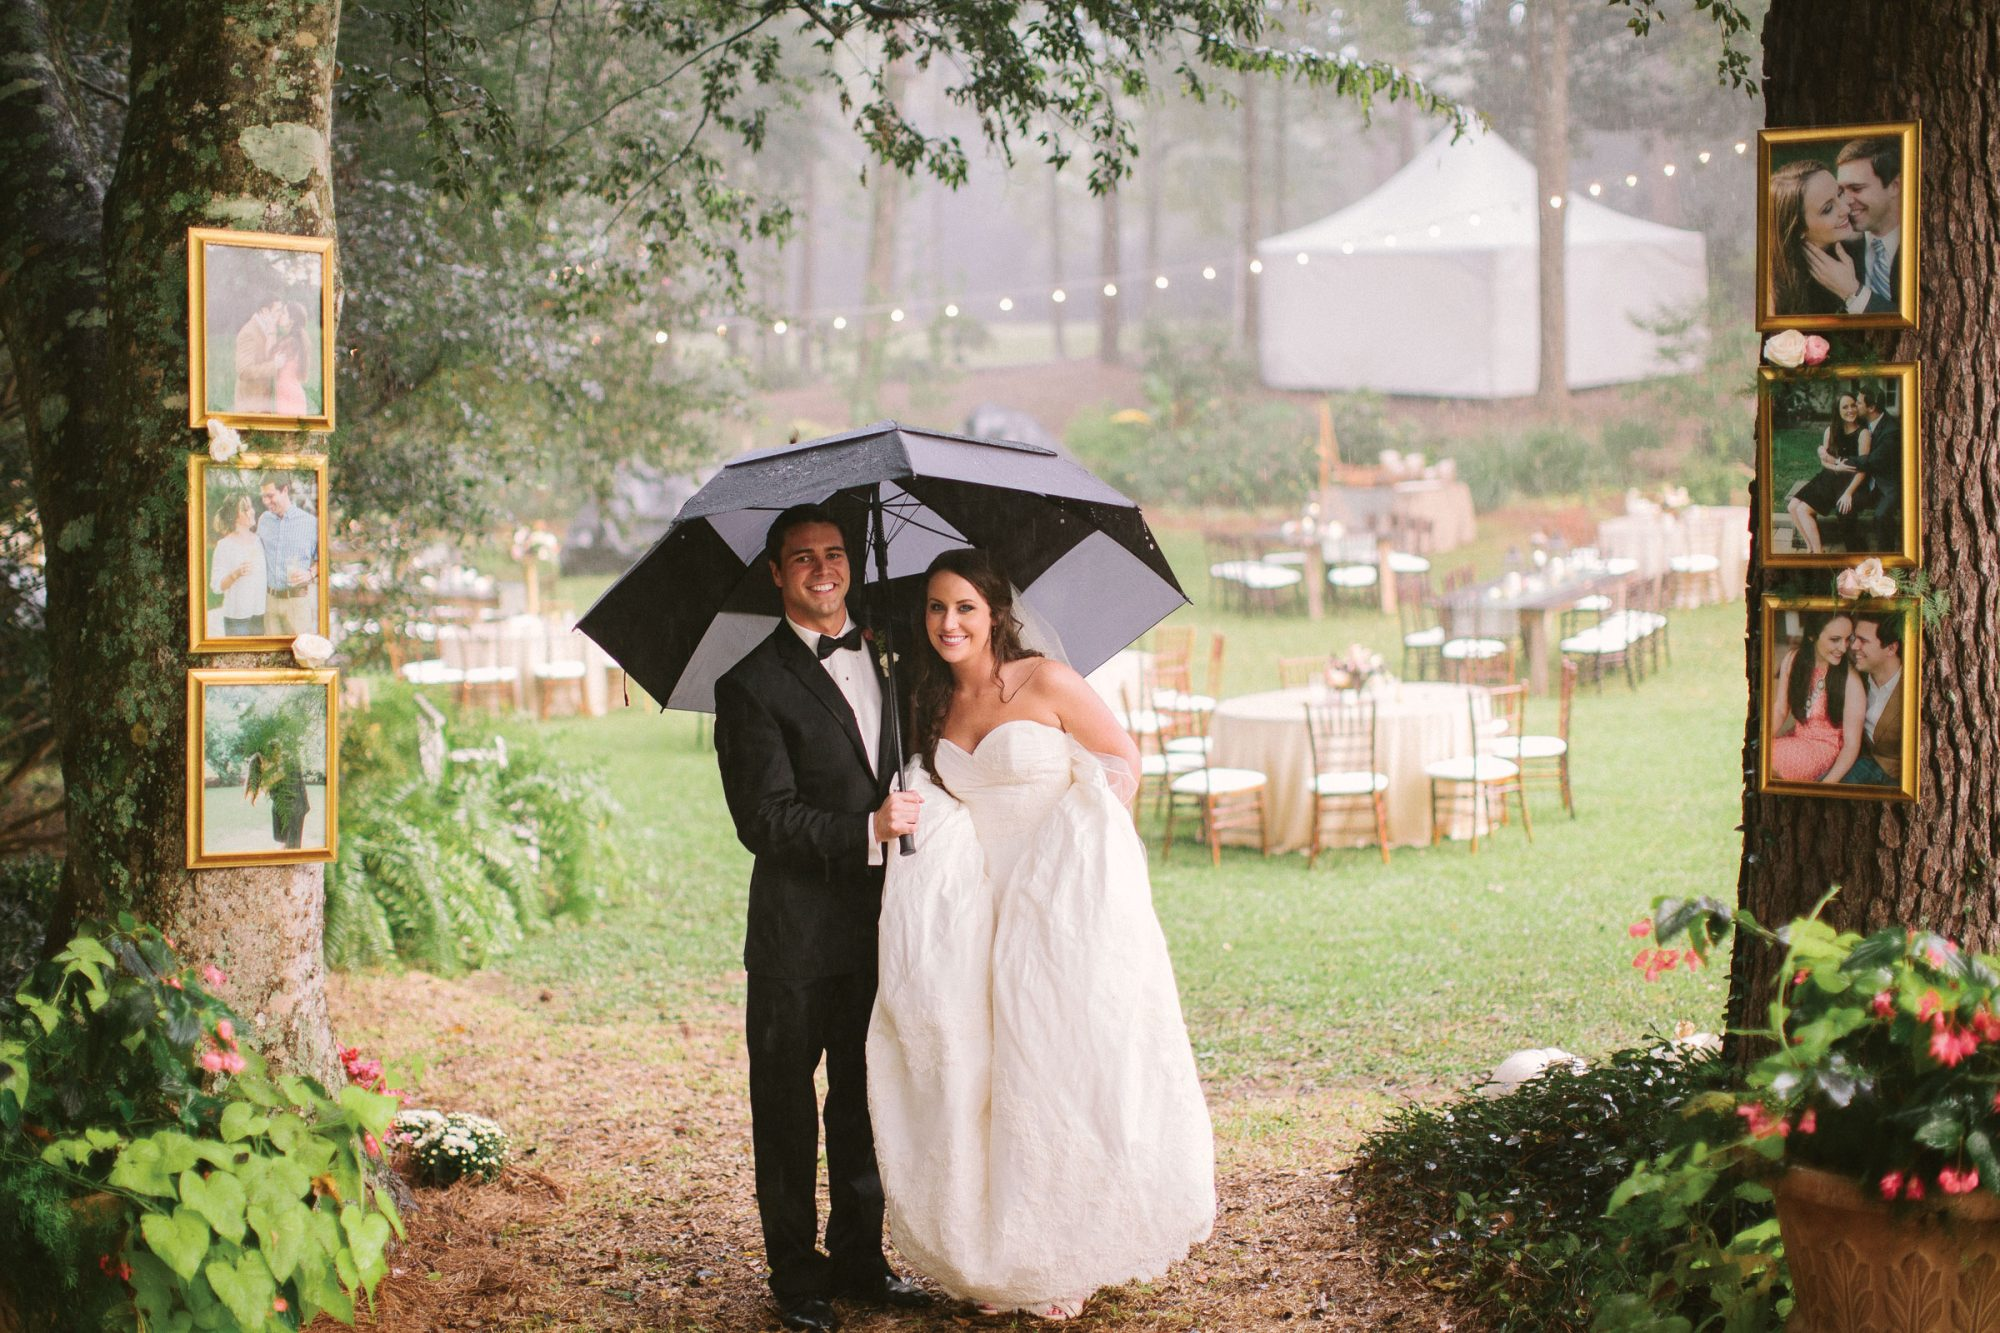 Fall Rainy Wedding Photo Shoot